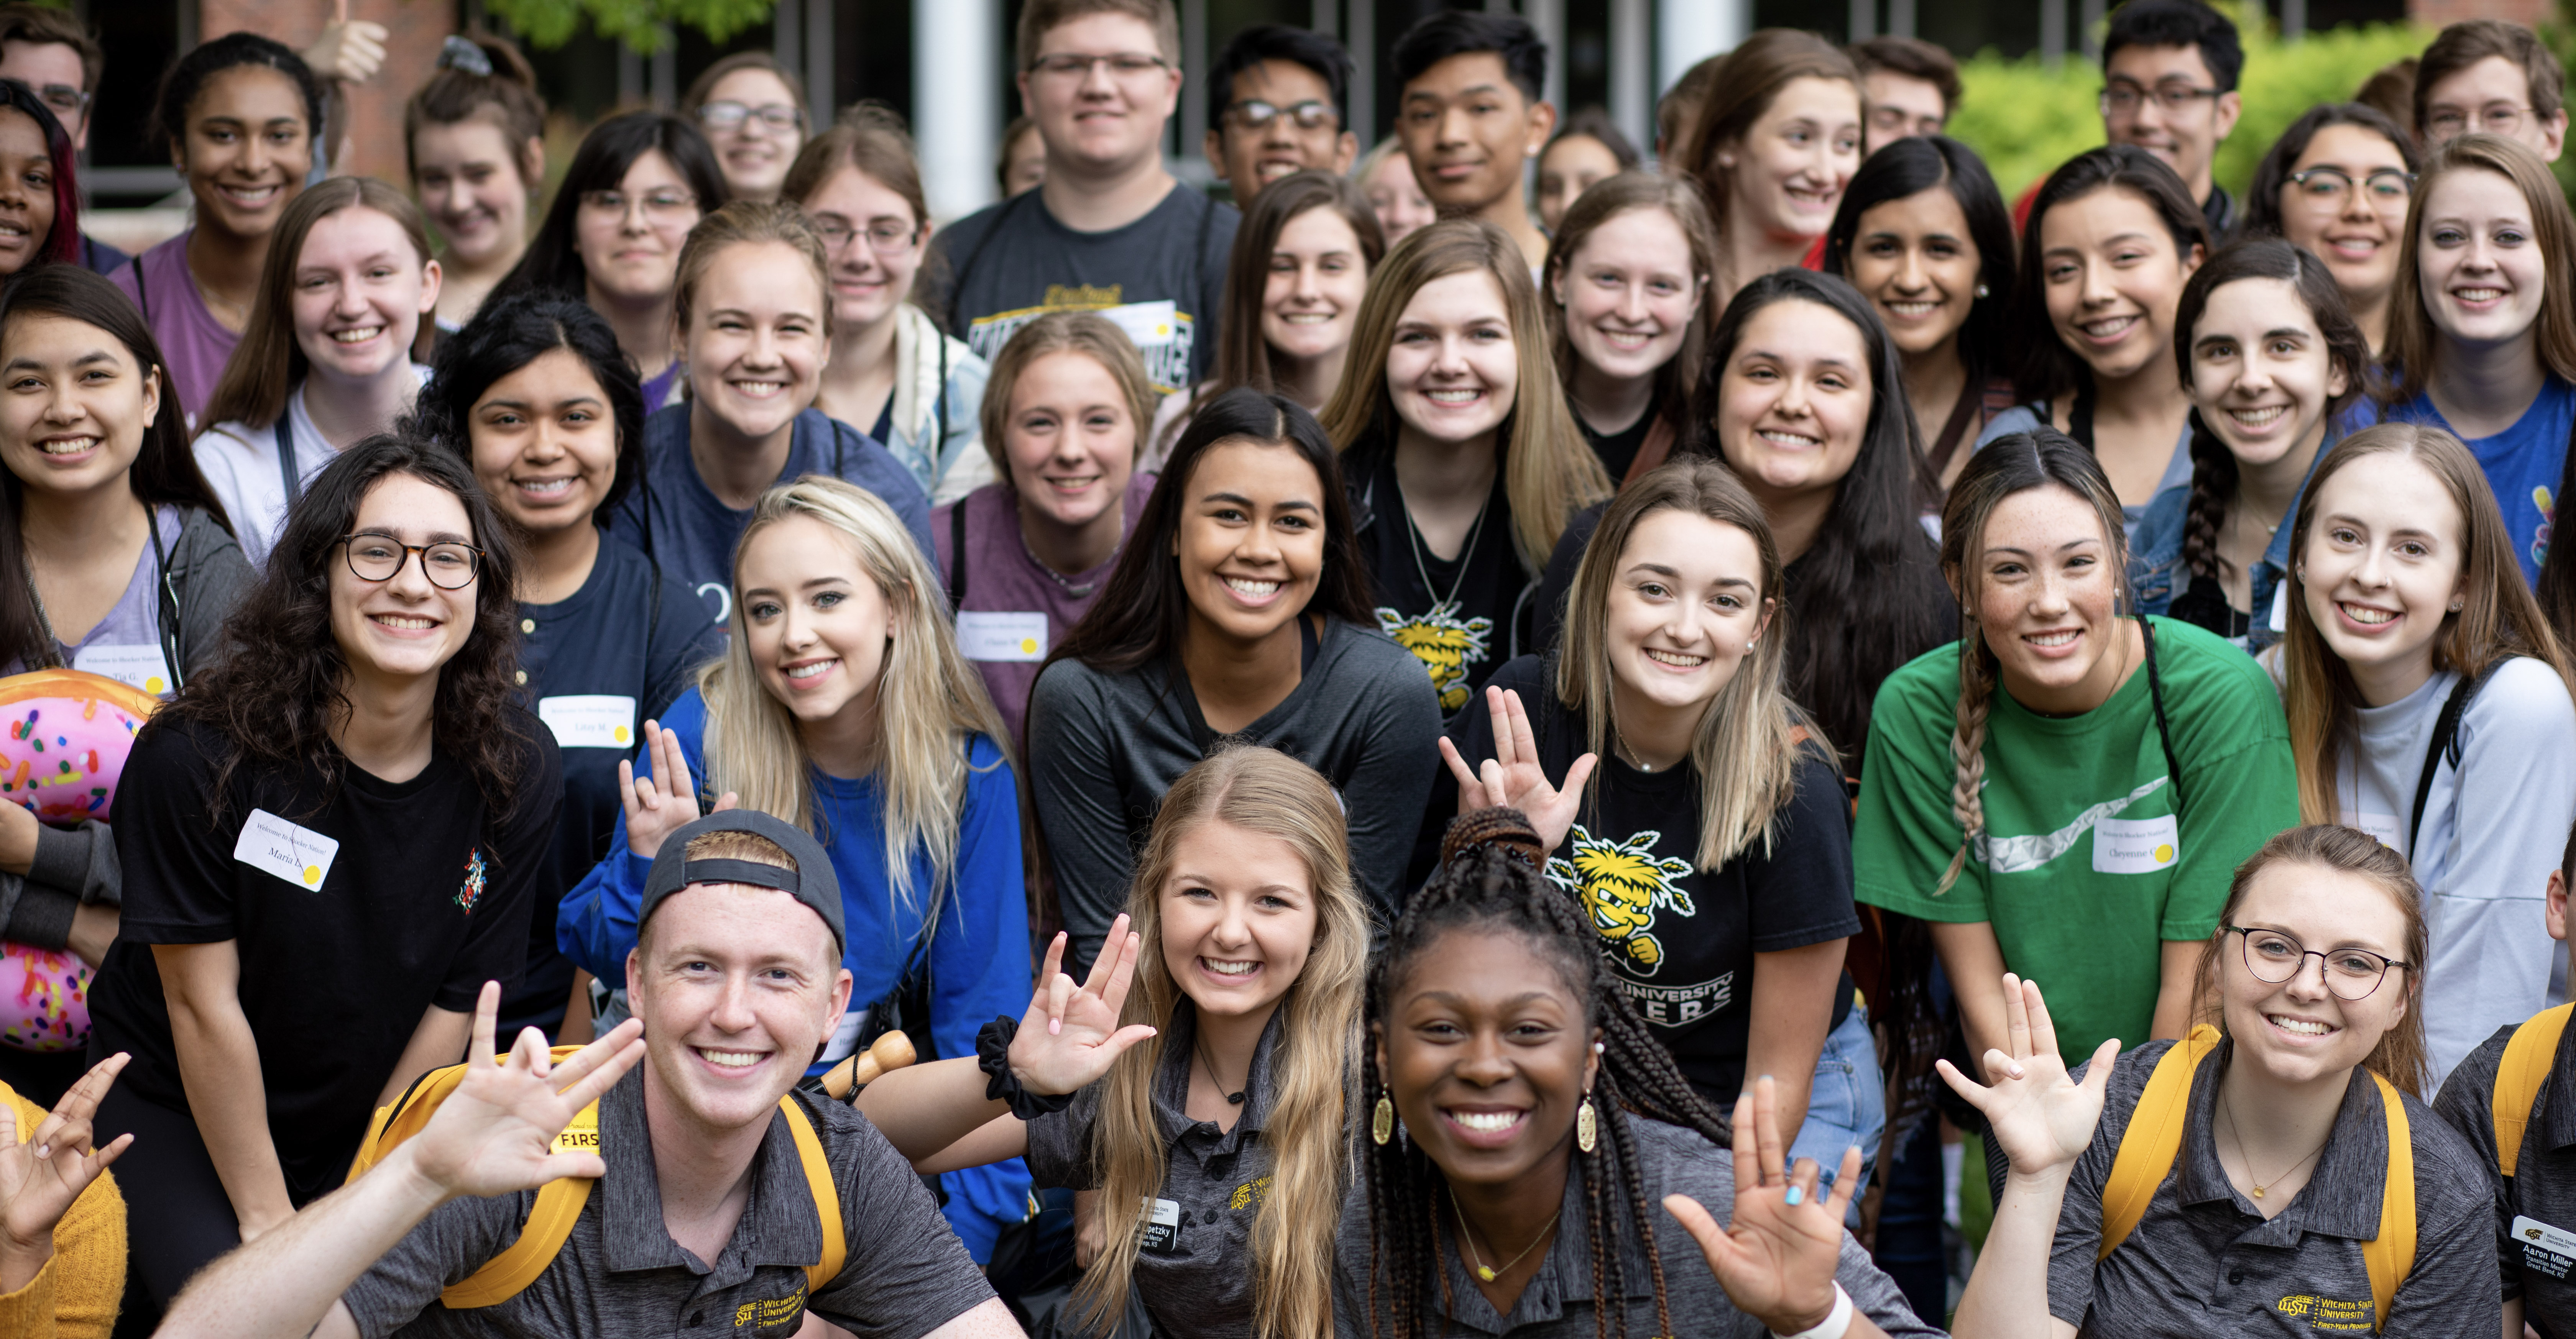 A diverse group of smiling students at freshman orientation